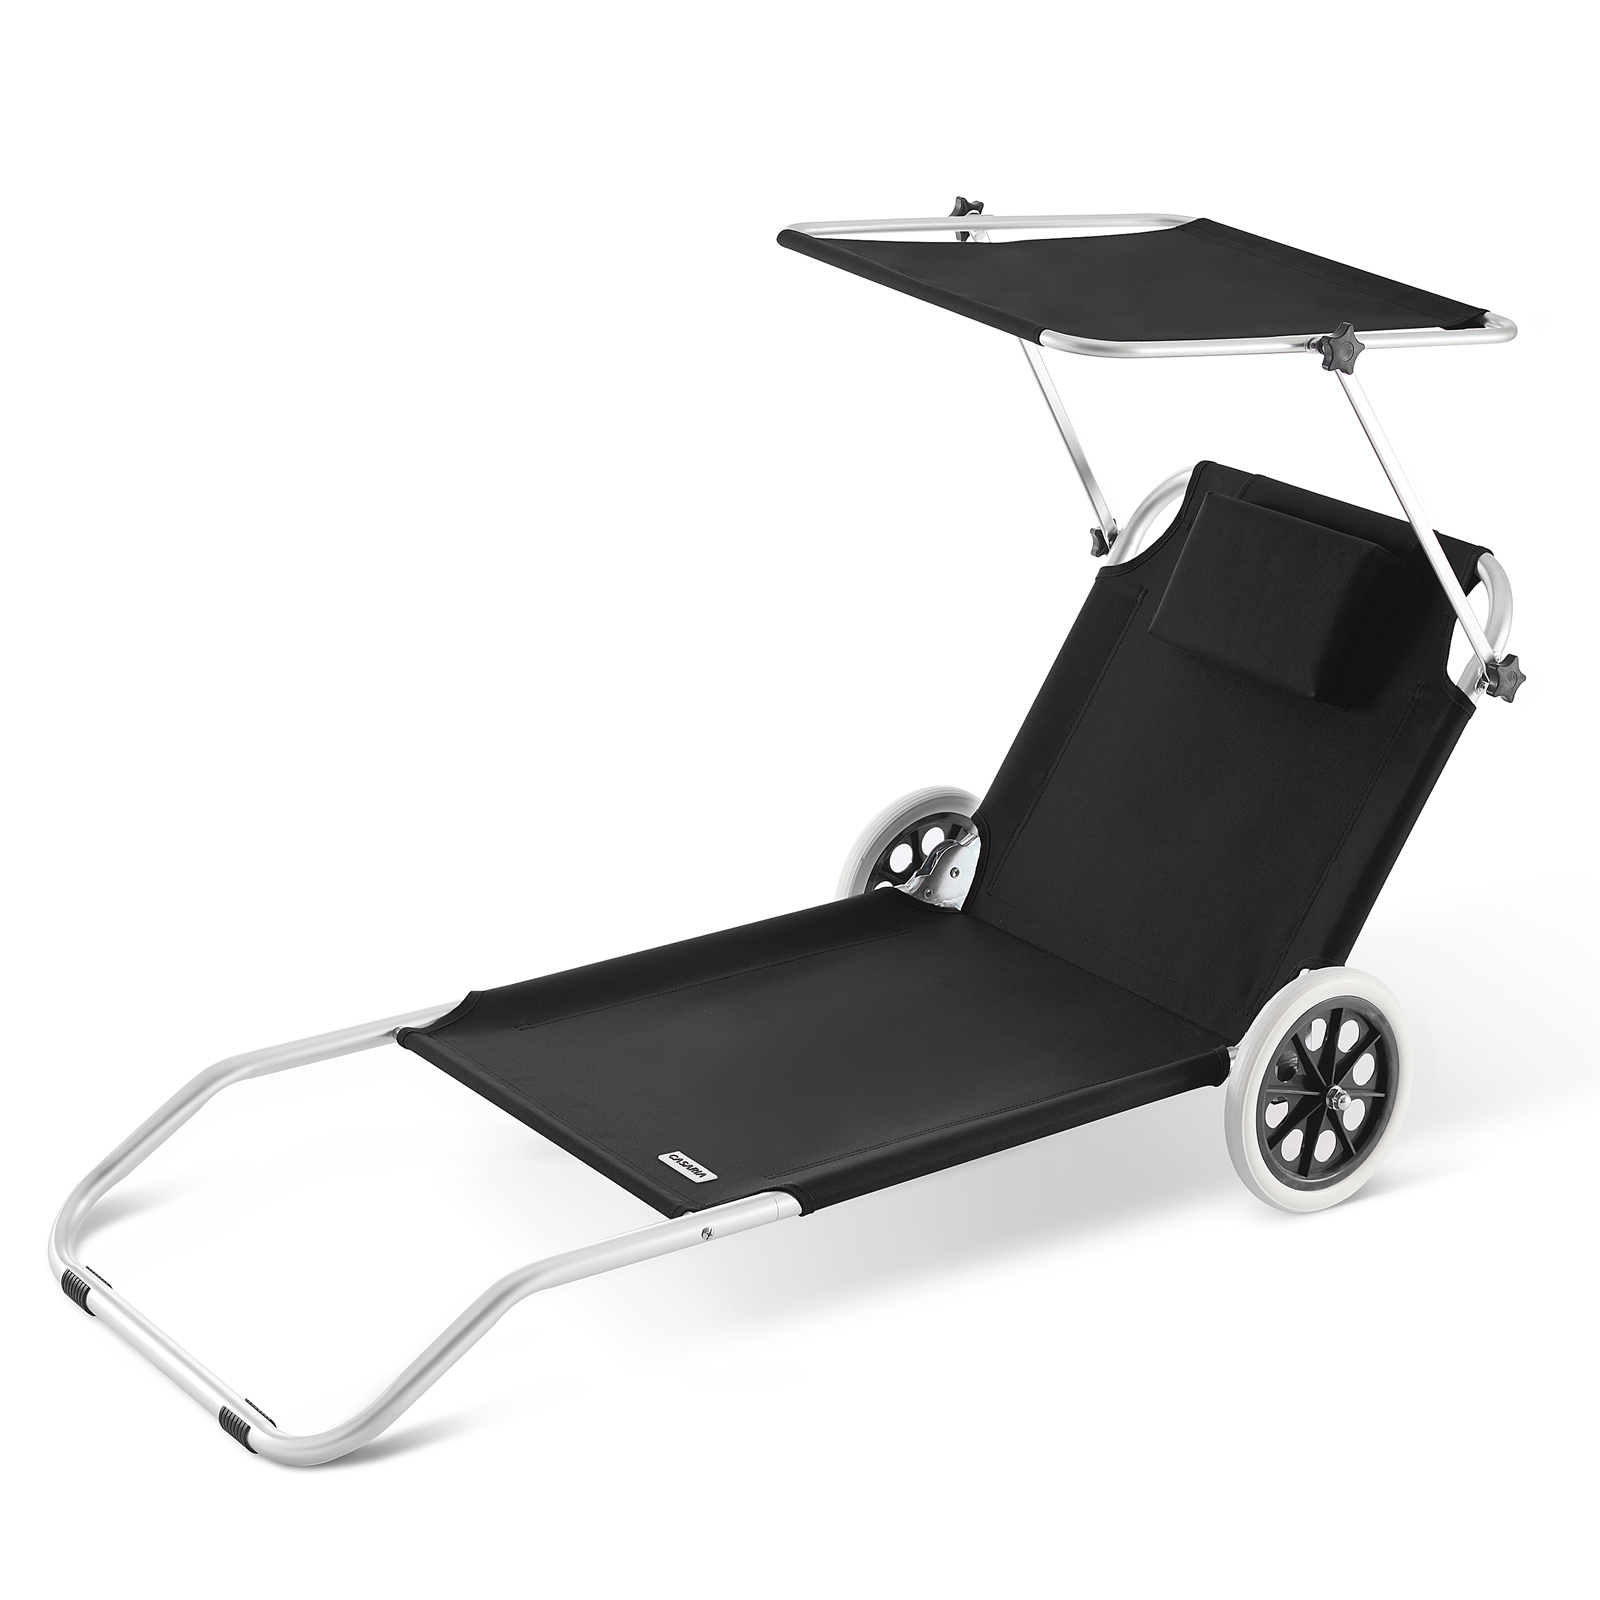 Chaise longue cr te bain de soleil plage en aluminium for Chaise longue de plage pliable